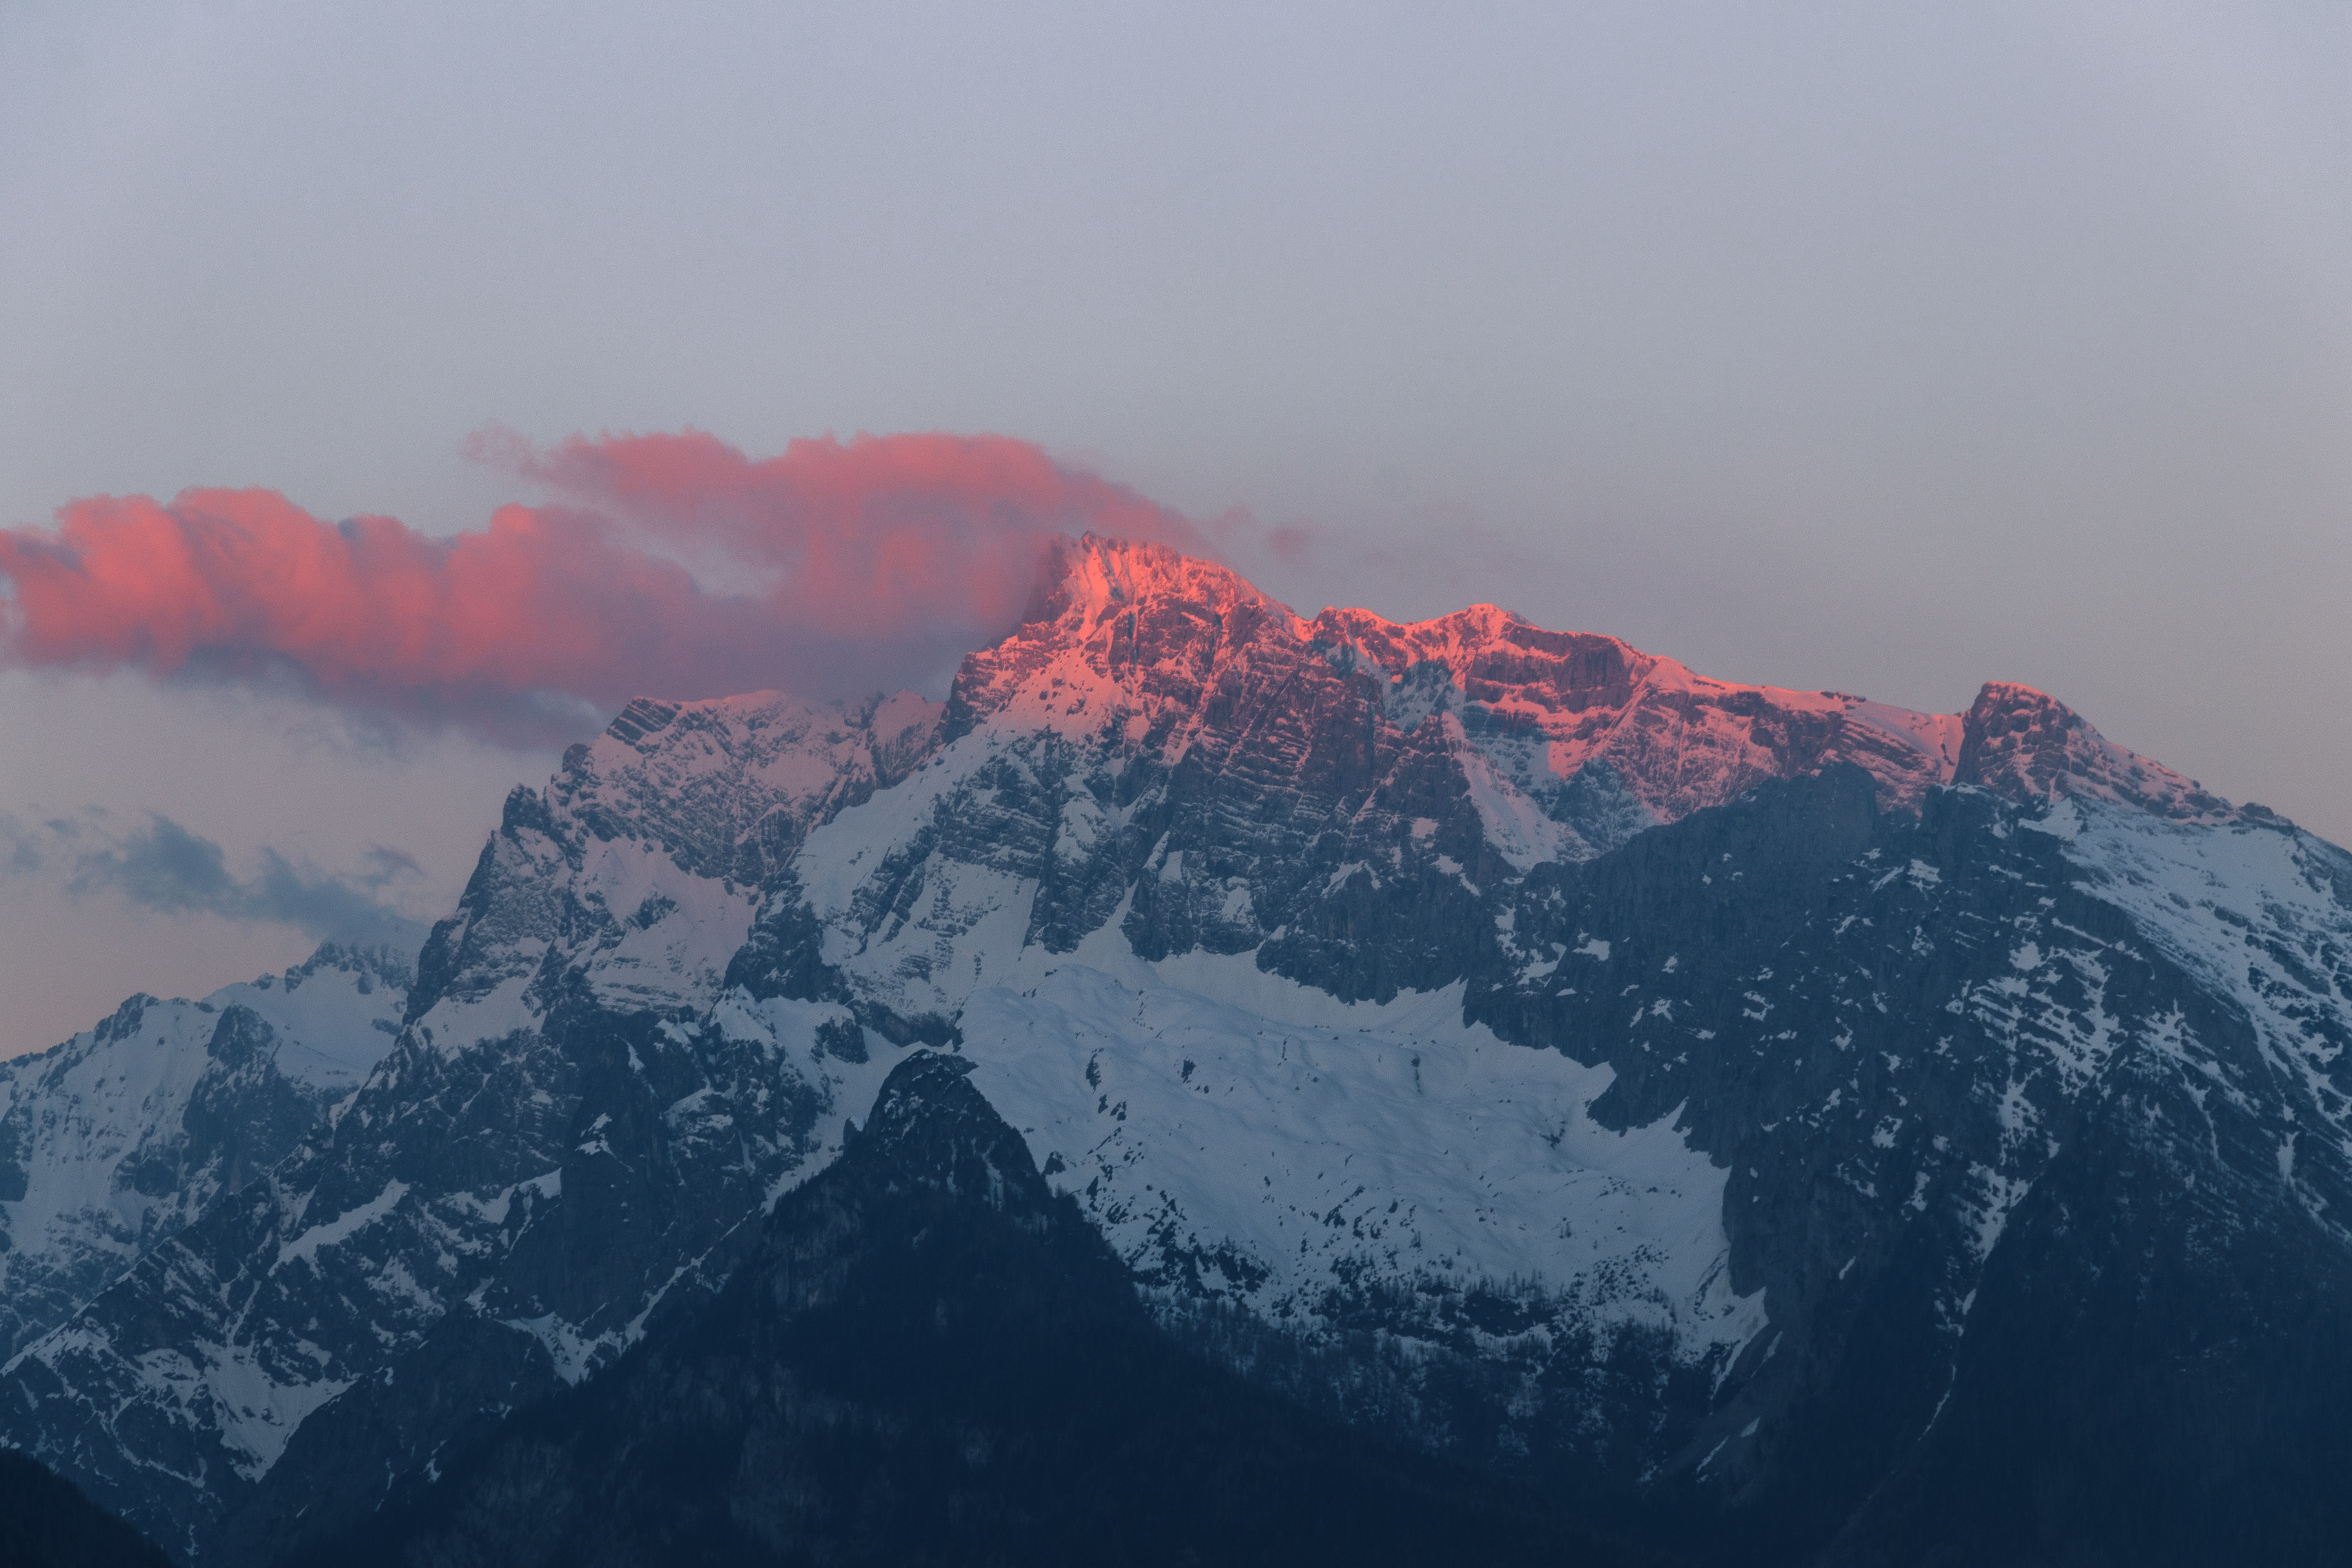 Red sunlight falls on the crest of a mountain during dusk